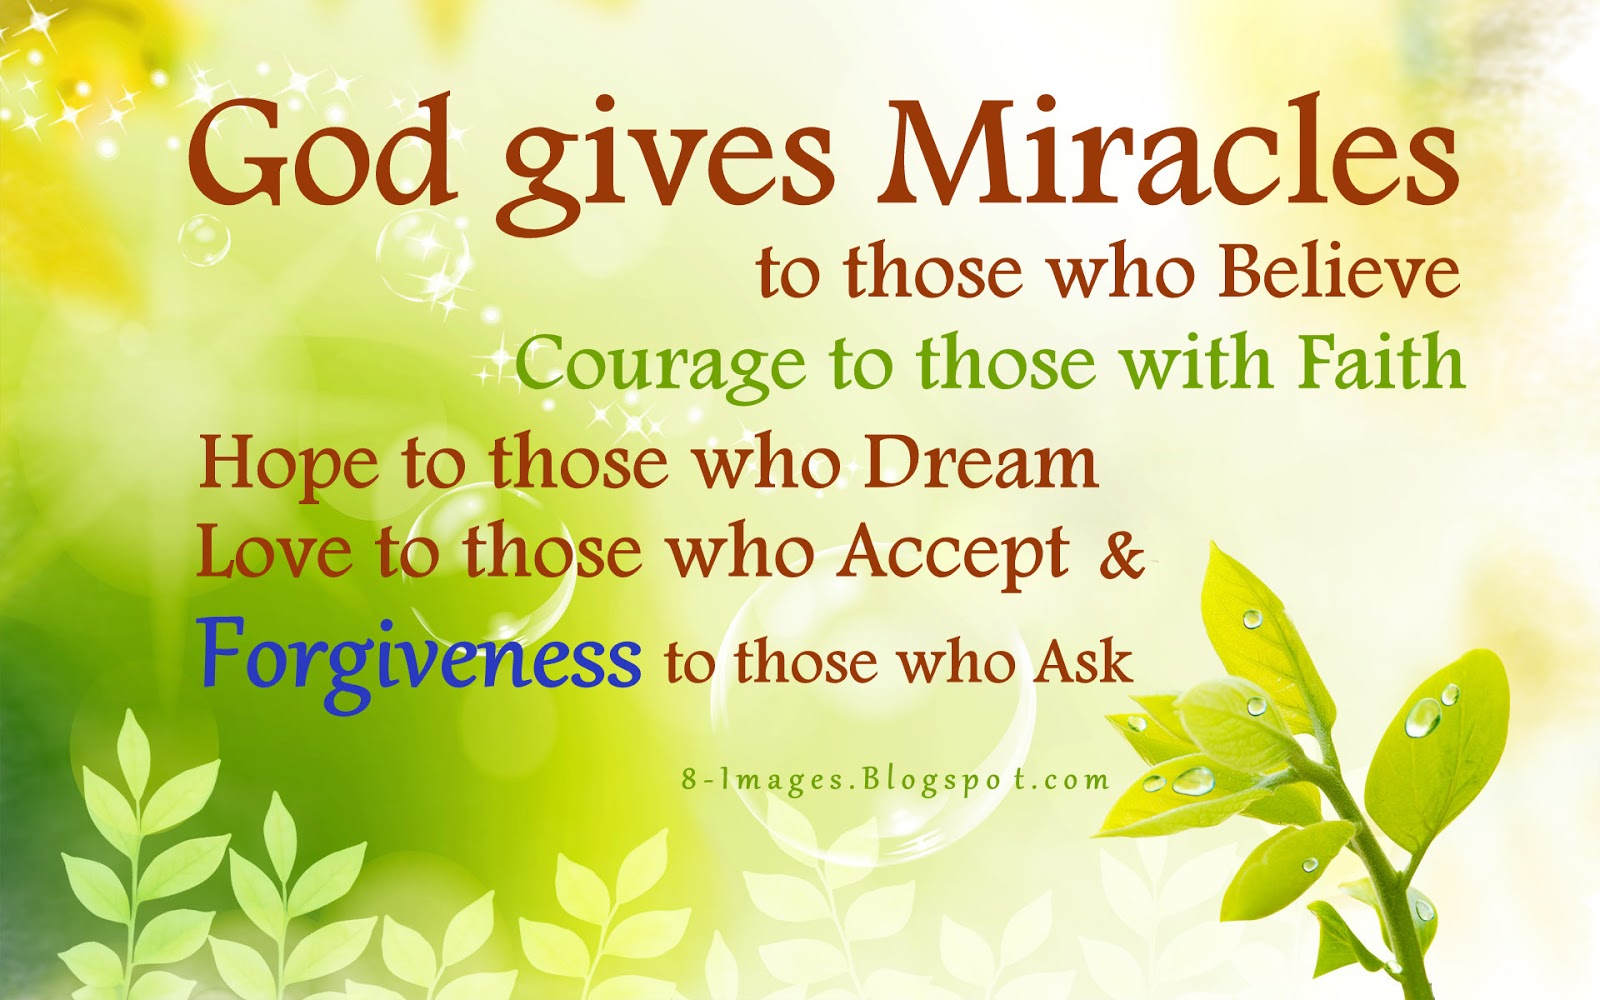 God Gives Miracles To Those Who Believe, Courage To Those With Faith, Hope  To Those Who Dream, Love To Those Who Accept, And Forgiveness To Those Who  Ask